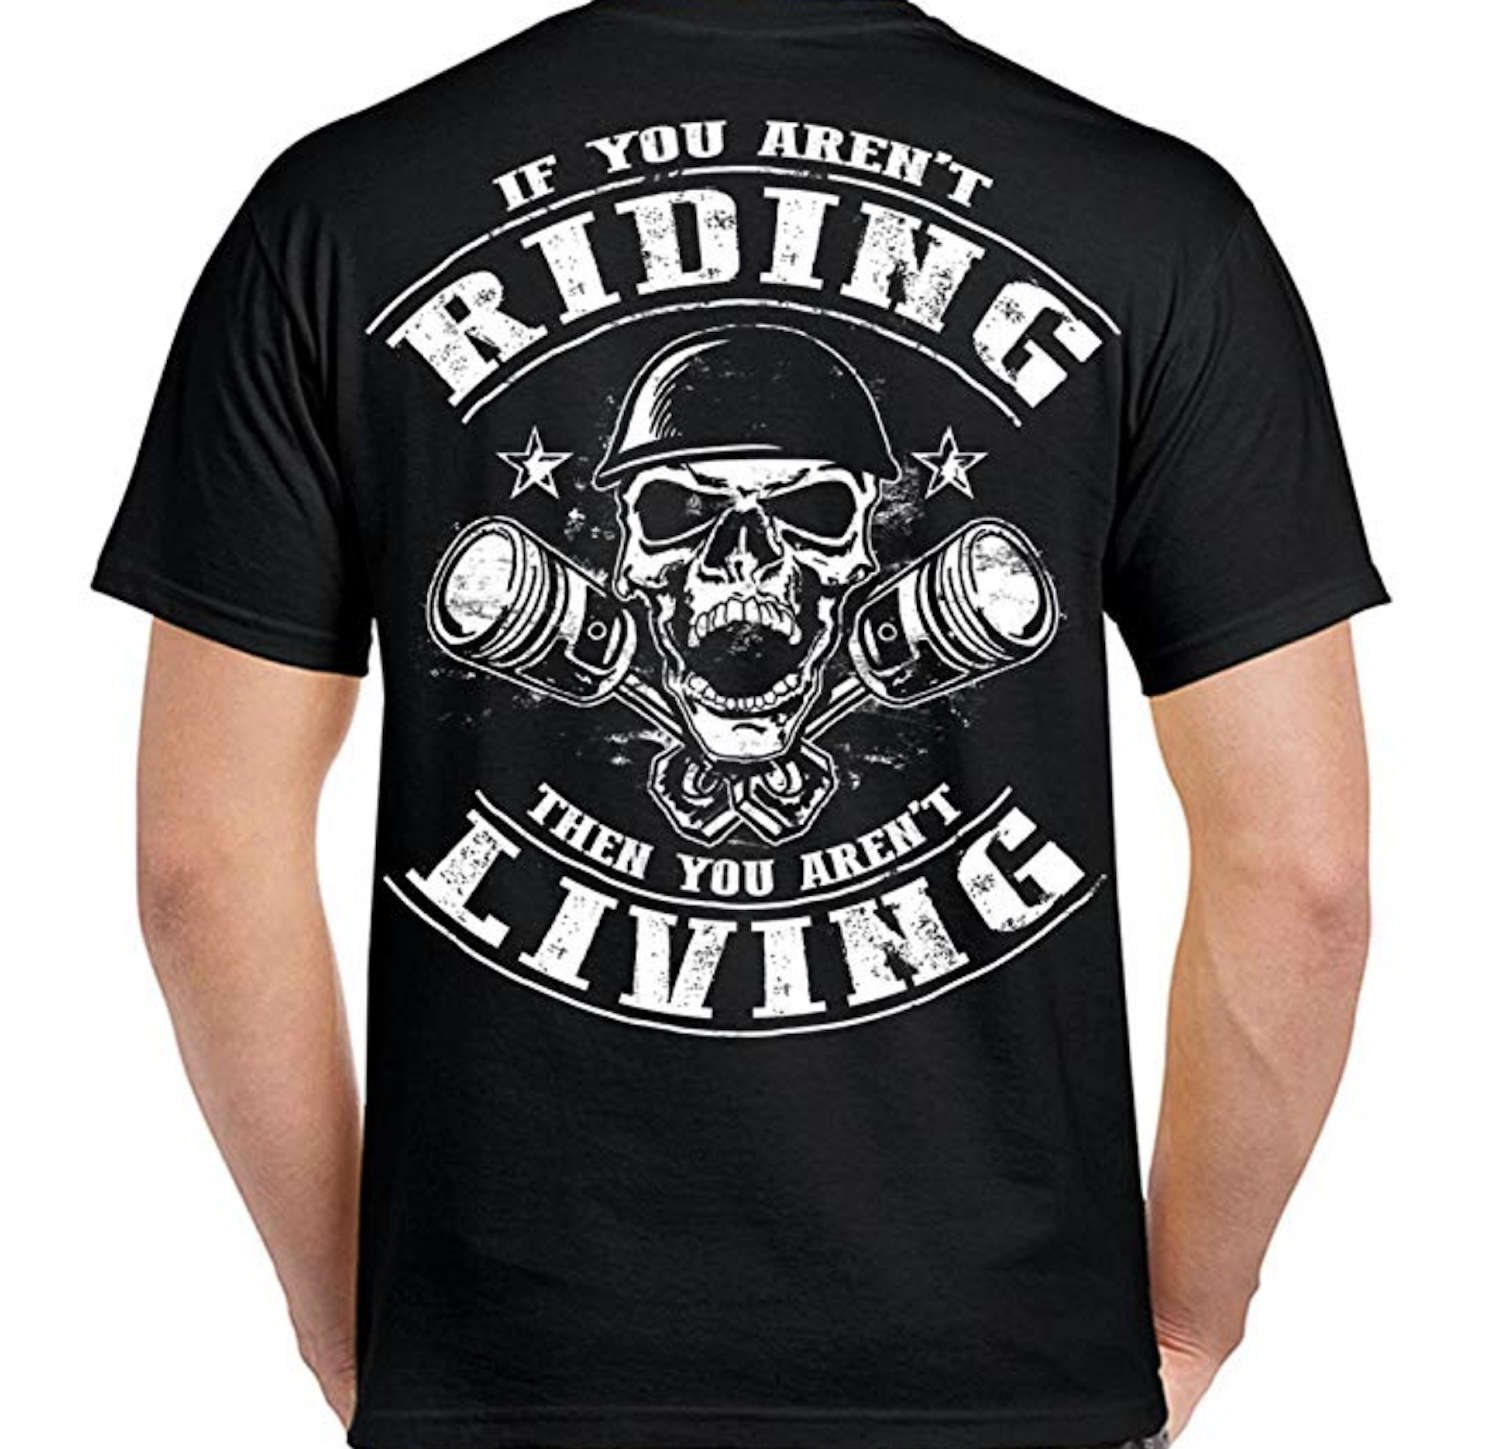 if you aren't riding shirt